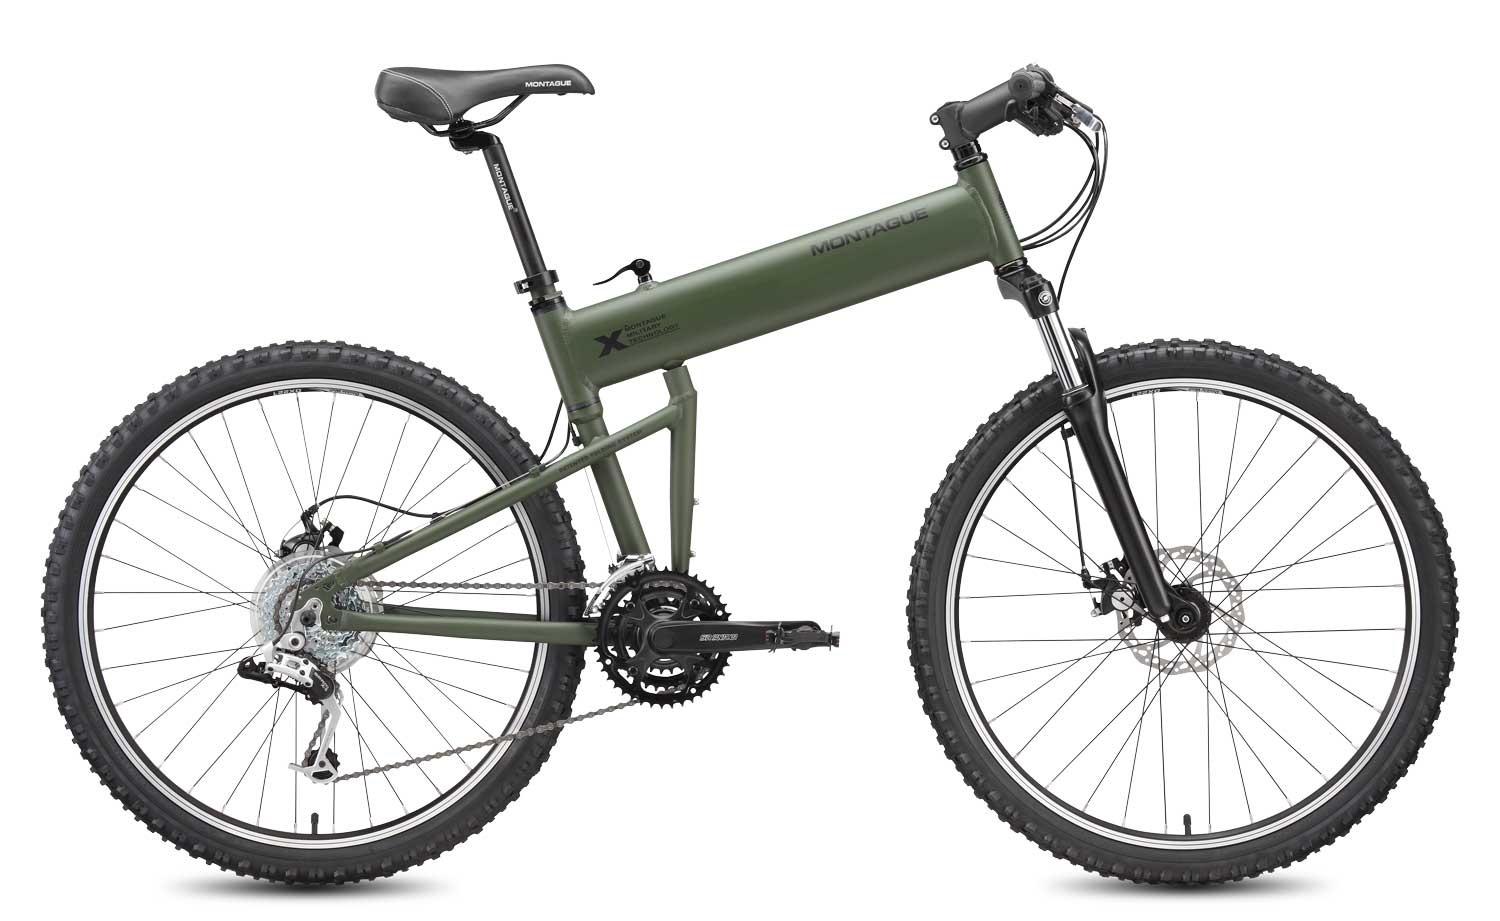 2010 Paratrooper Mountain Folding Bike